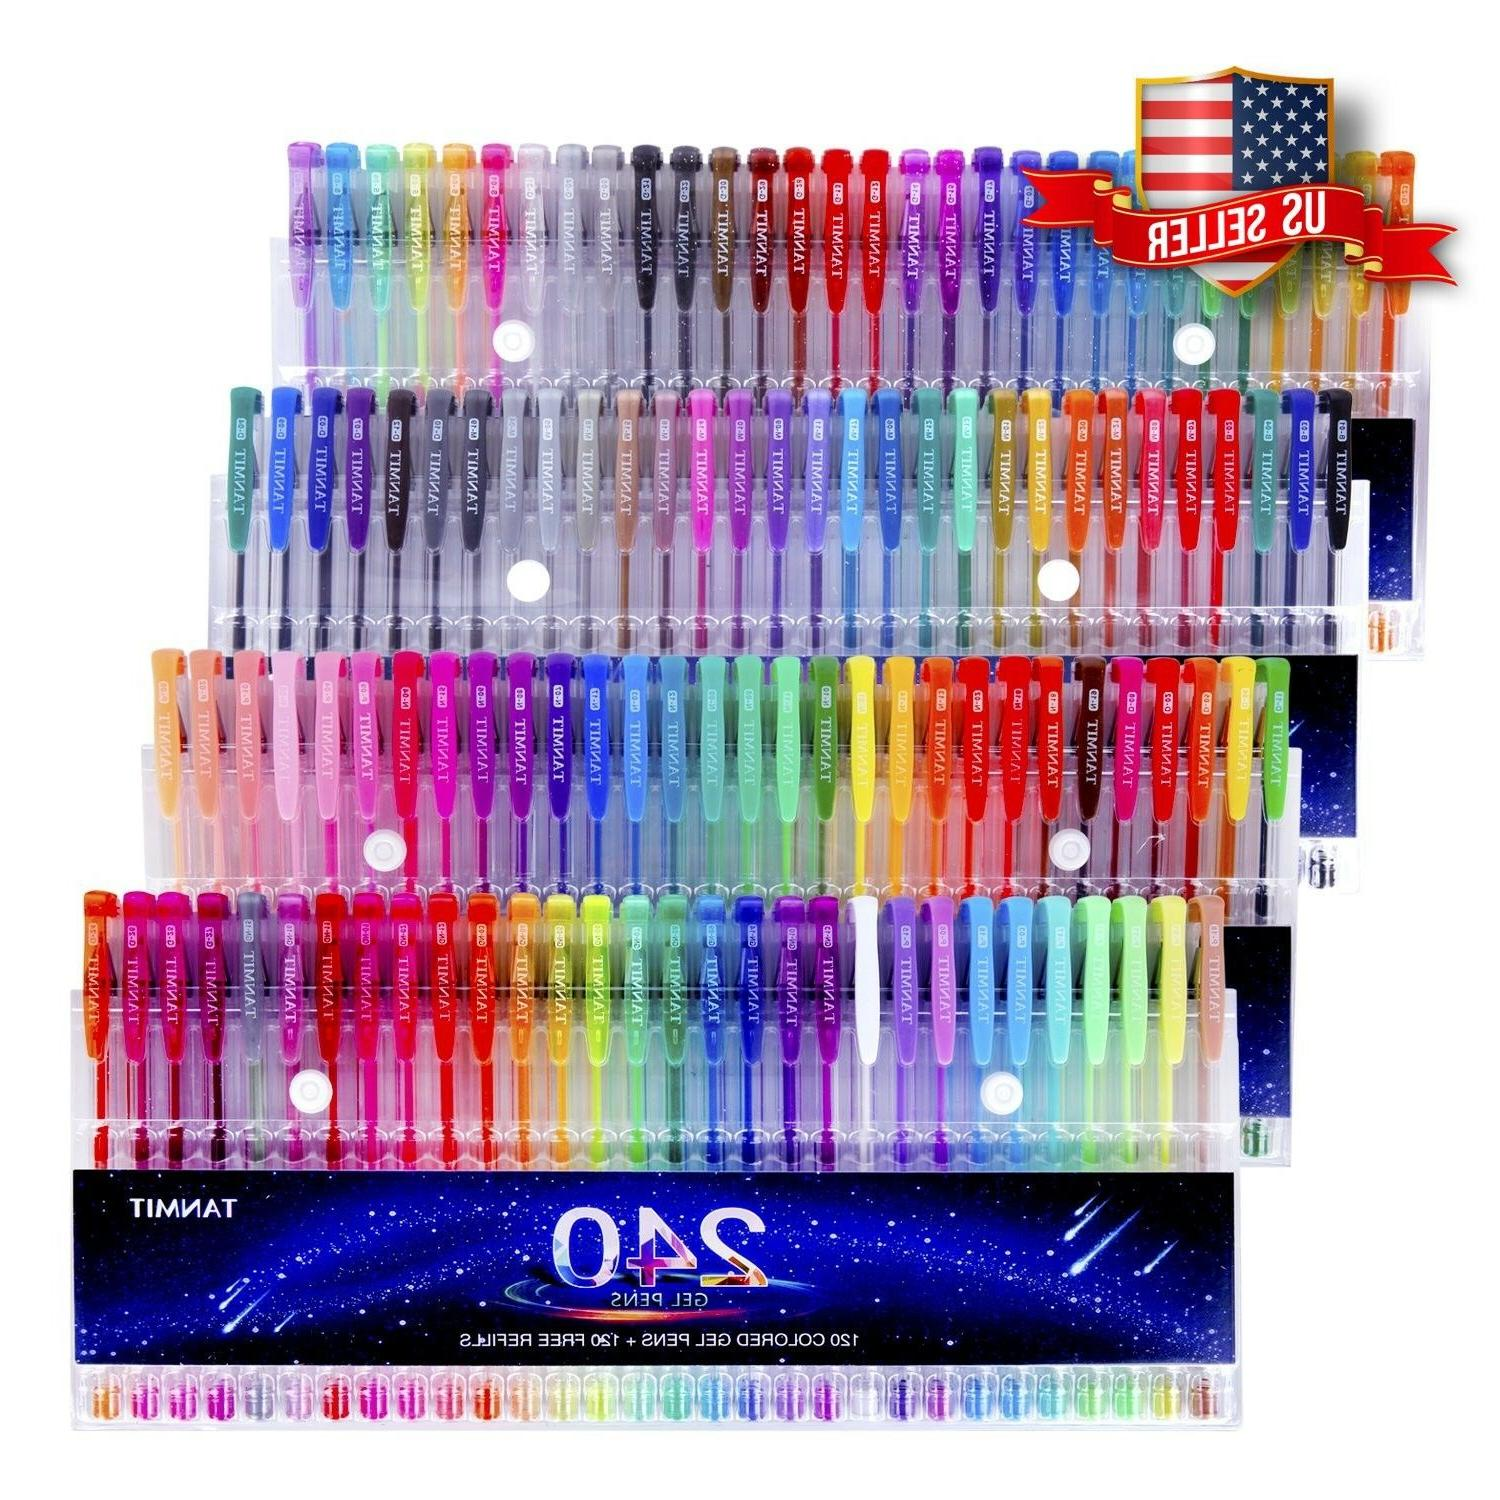 Tanmit 240 Pens Coloring Books, Writing, Drawing